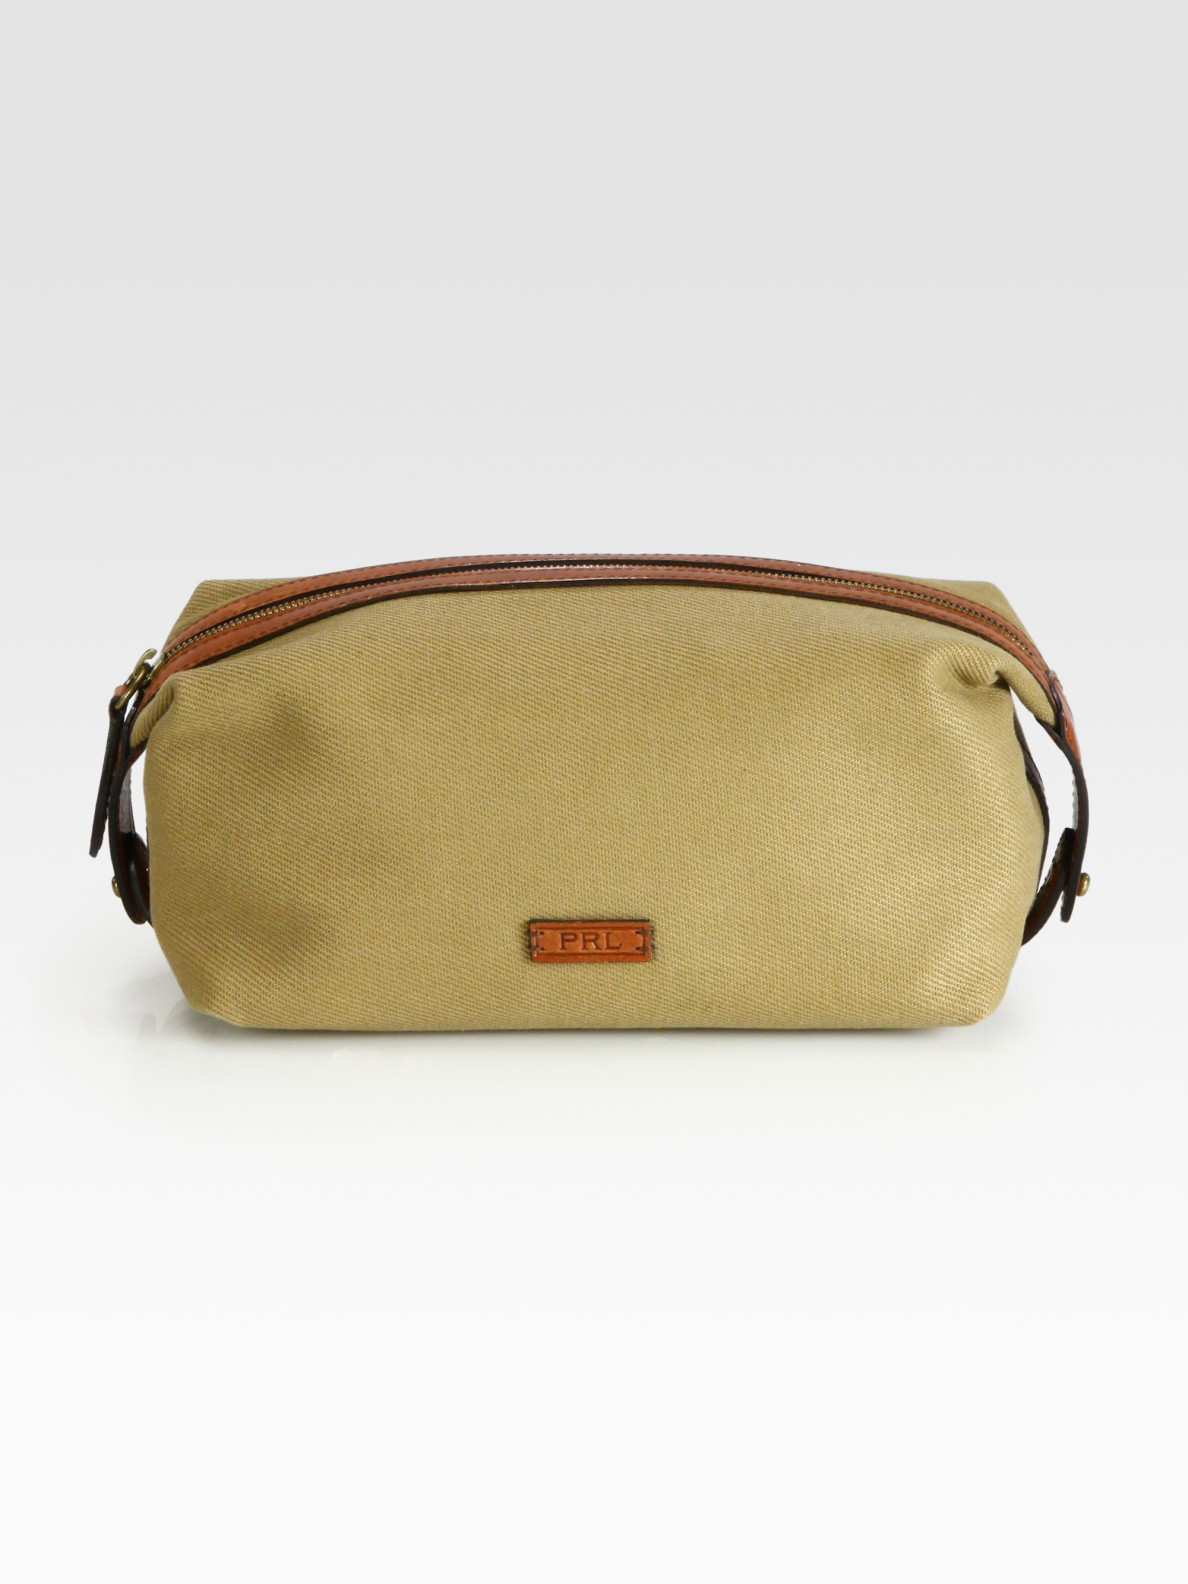 8fa5acb3a68a Lyst - Polo Ralph Lauren Dopp Kit in Natural for Men